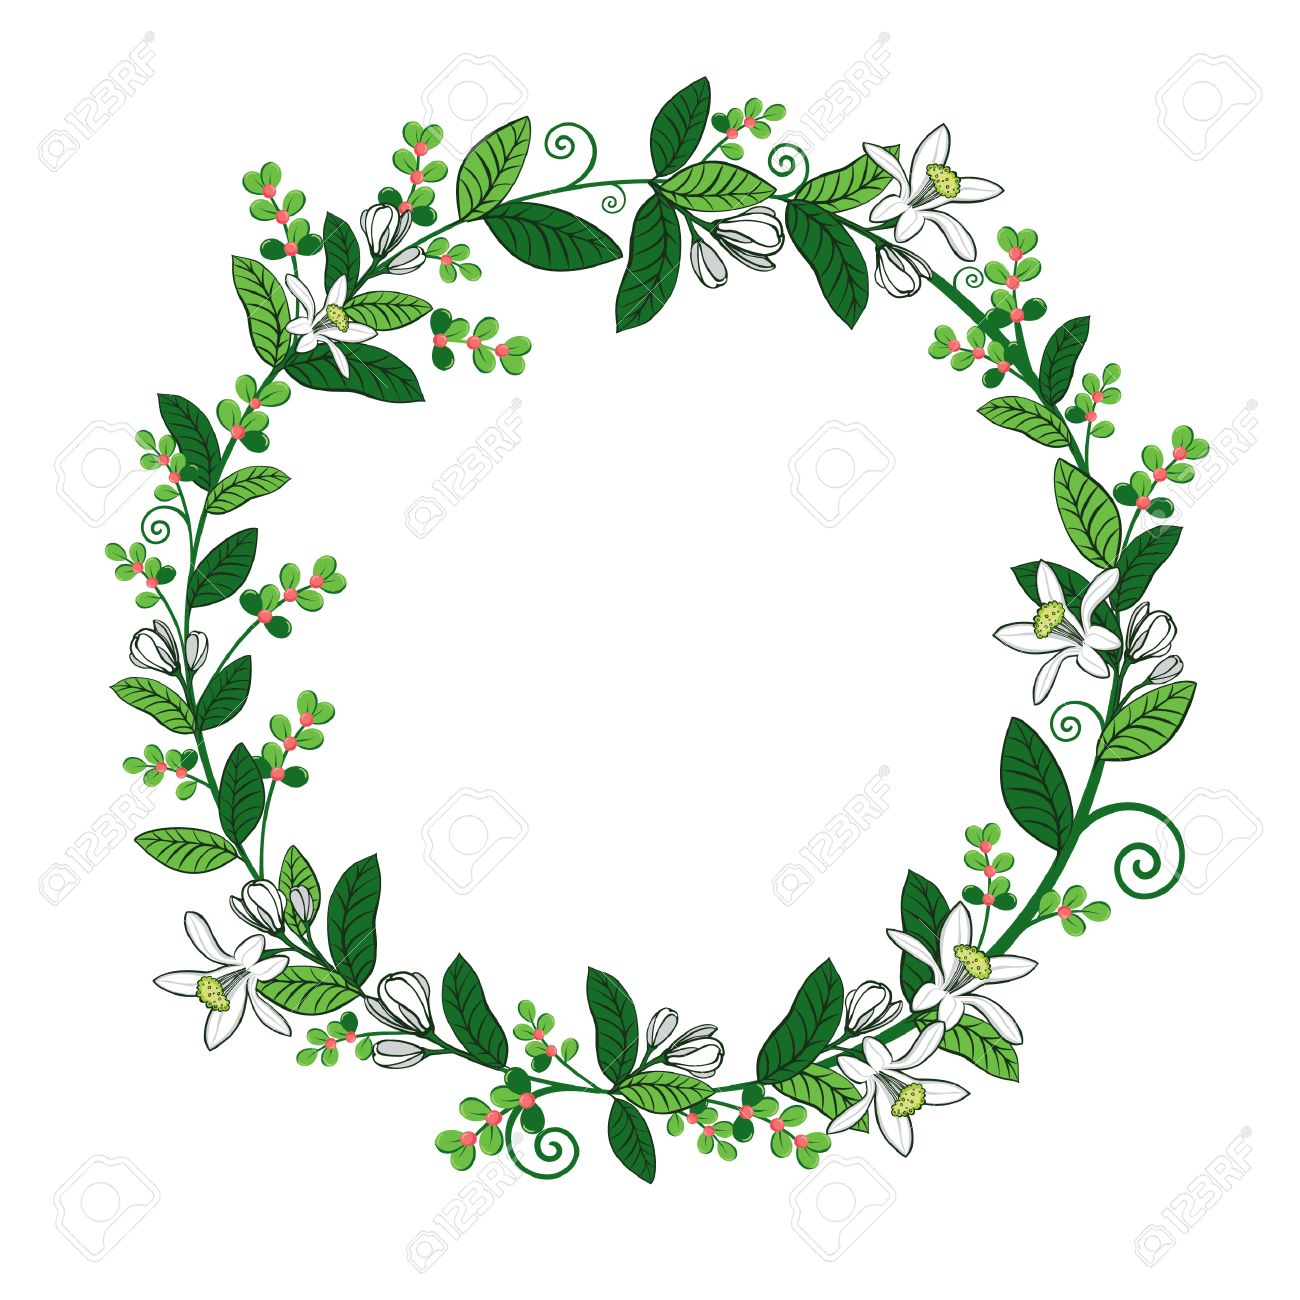 Wreath Of Leaves Flowers And Twigs With Space For Text Picture